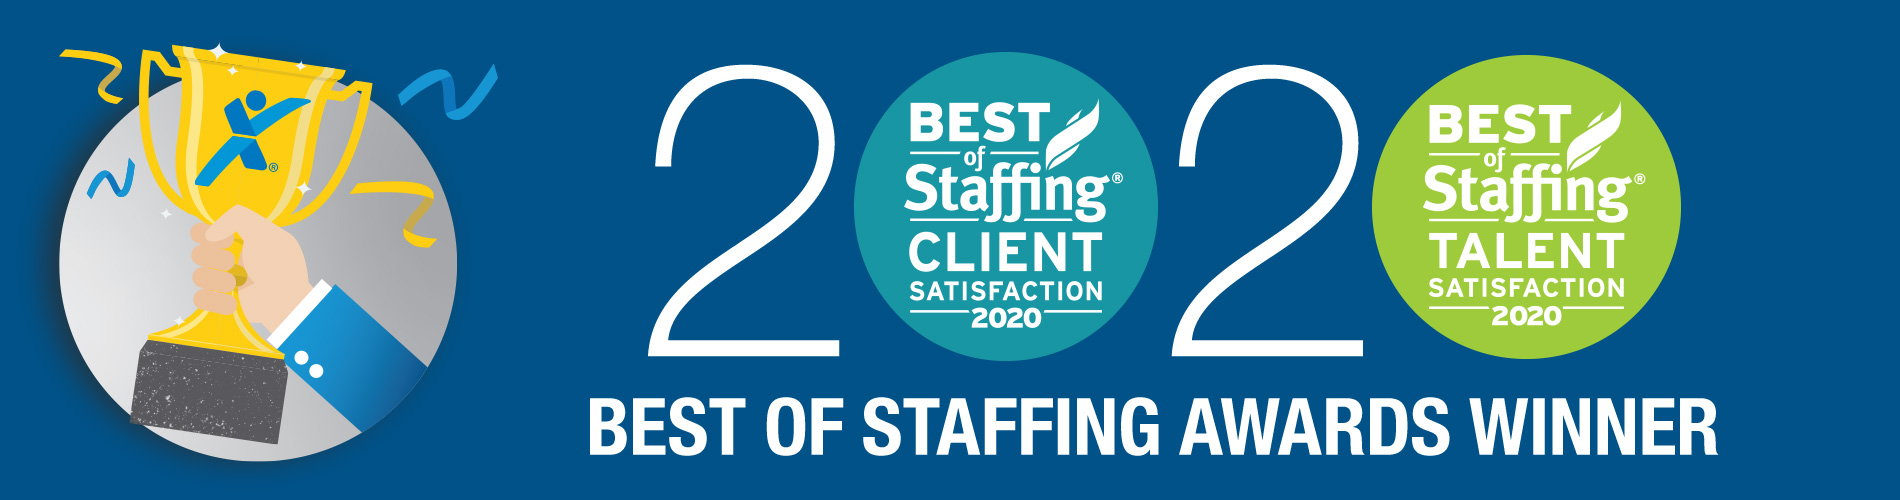 2020 Best of Staffing Express Employment Professionals